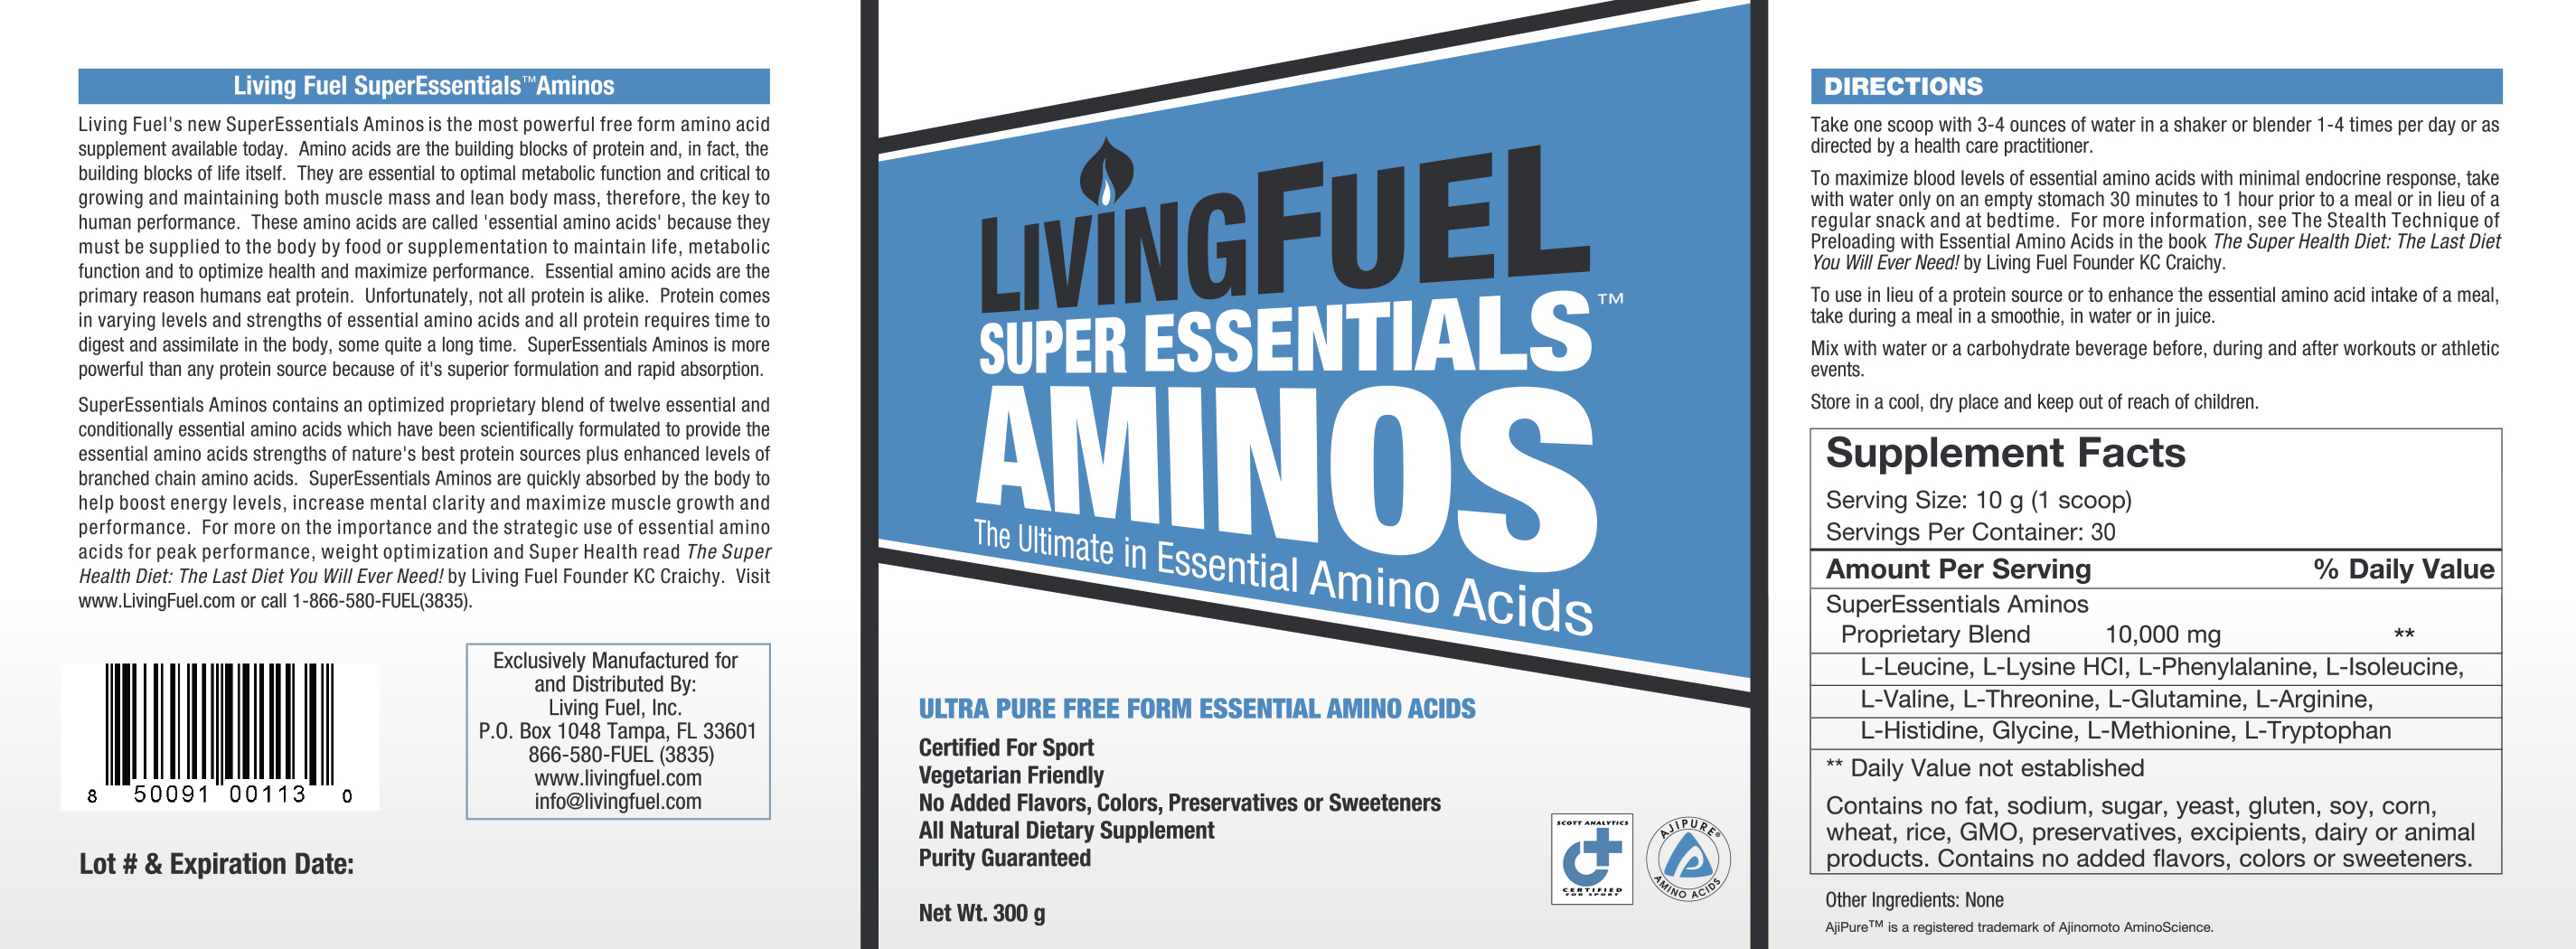 Super Essentials Aminos Ingredients